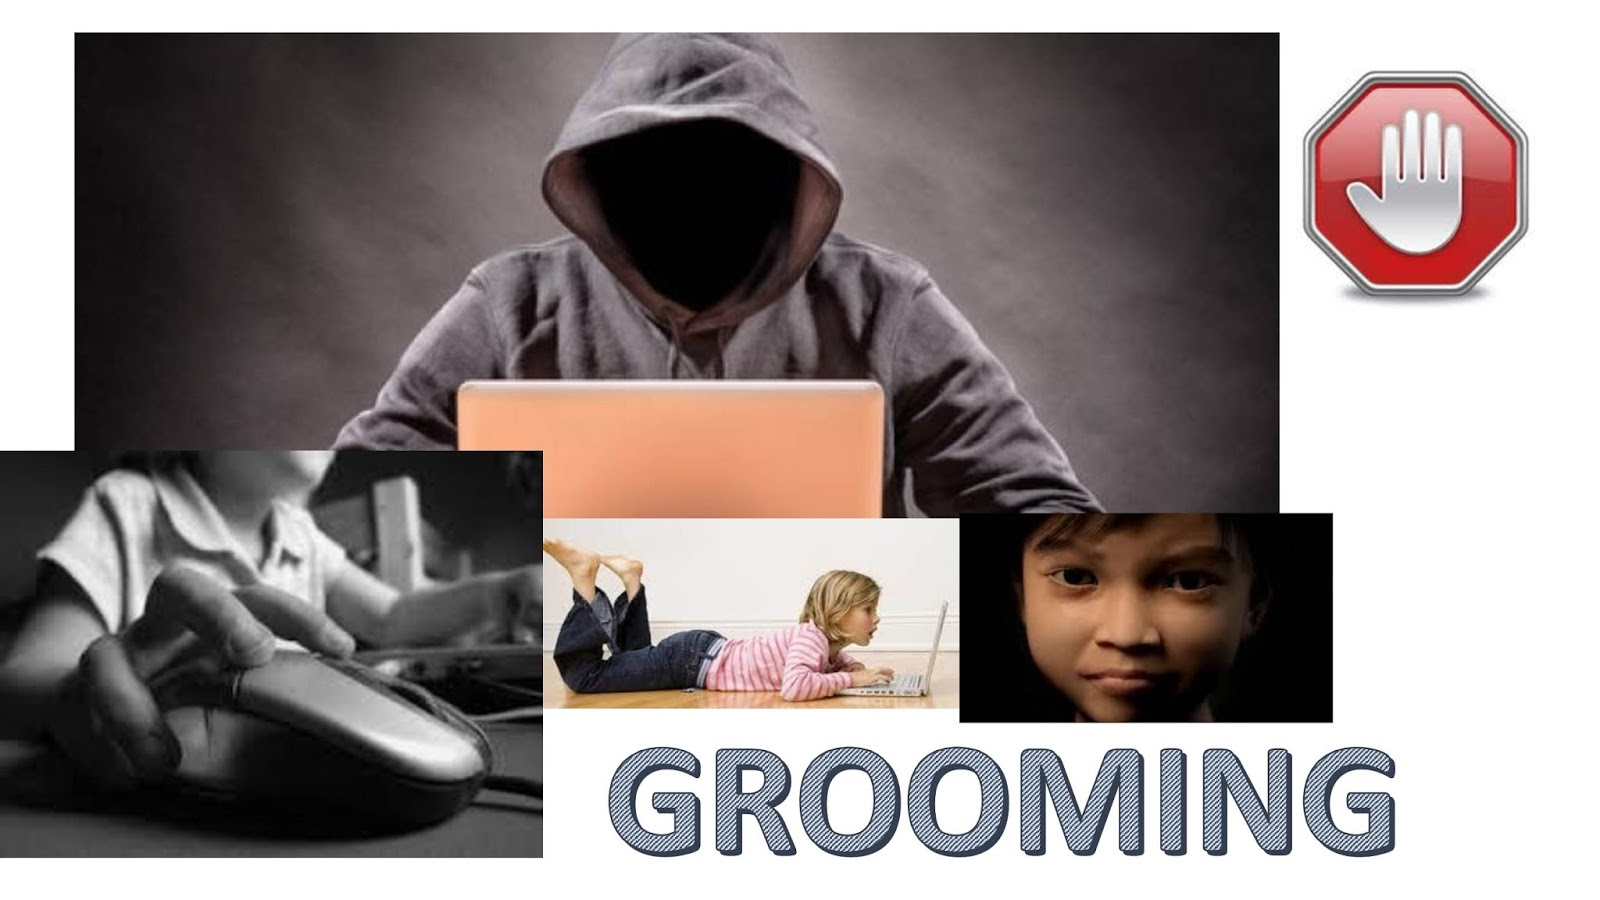 groom chat sites 1 on 1 chat when you use chat rooms in tohla, we connect you to another random chat user and let you have 1 on 1 chat with each other.